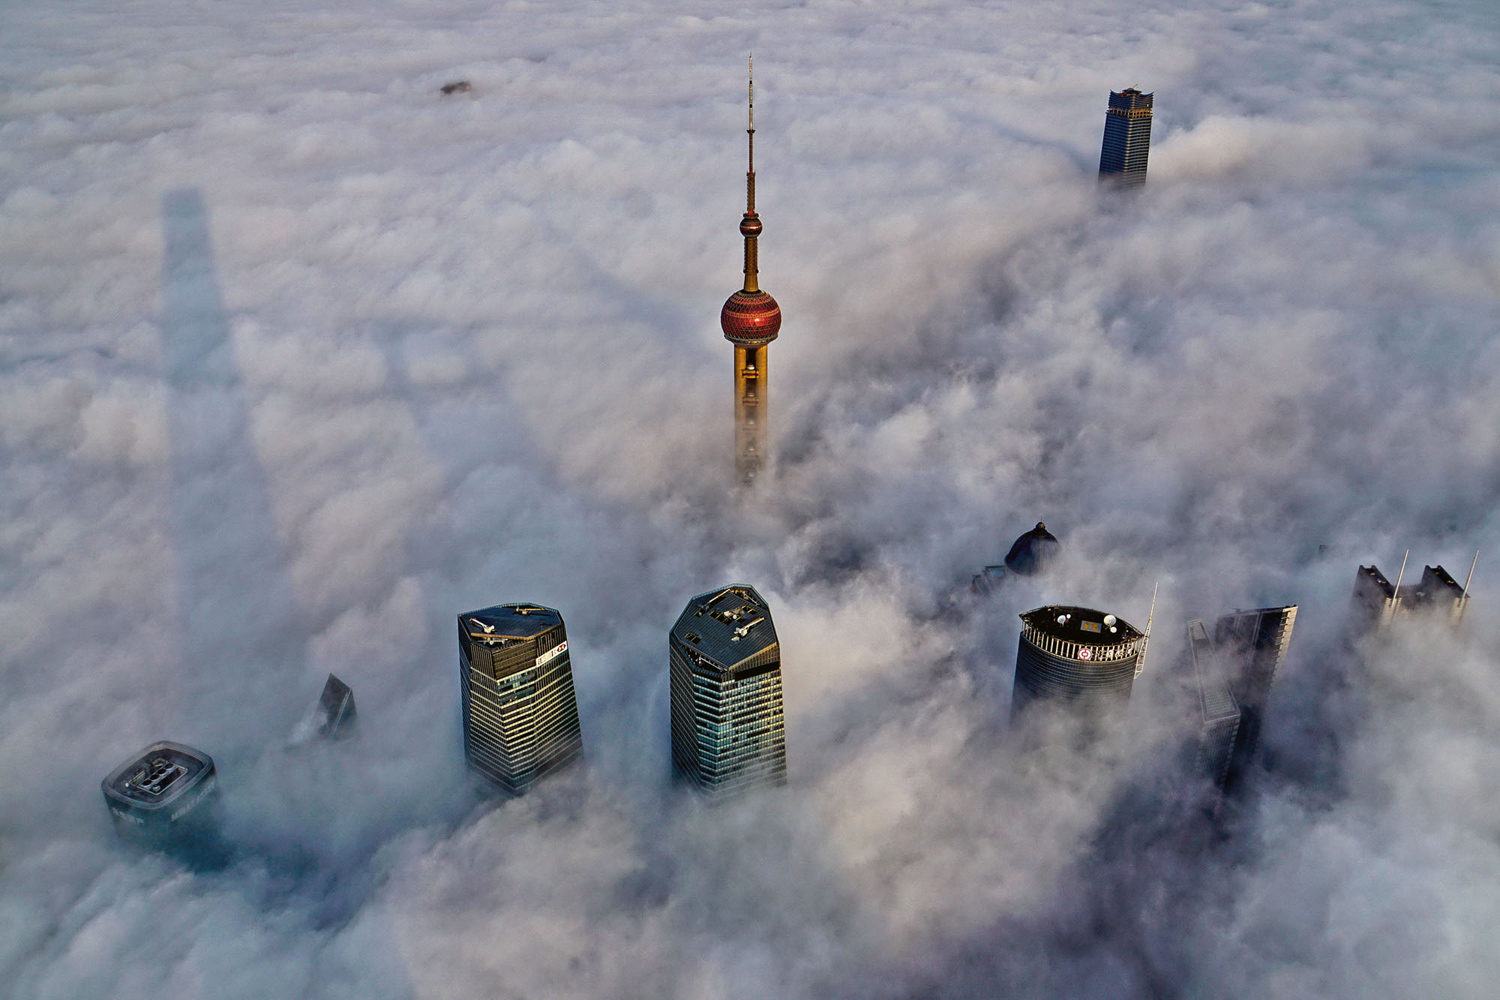 Oriental Pearl Tower, over a sea of clouds in Shanghai, China, on February 28, 2016